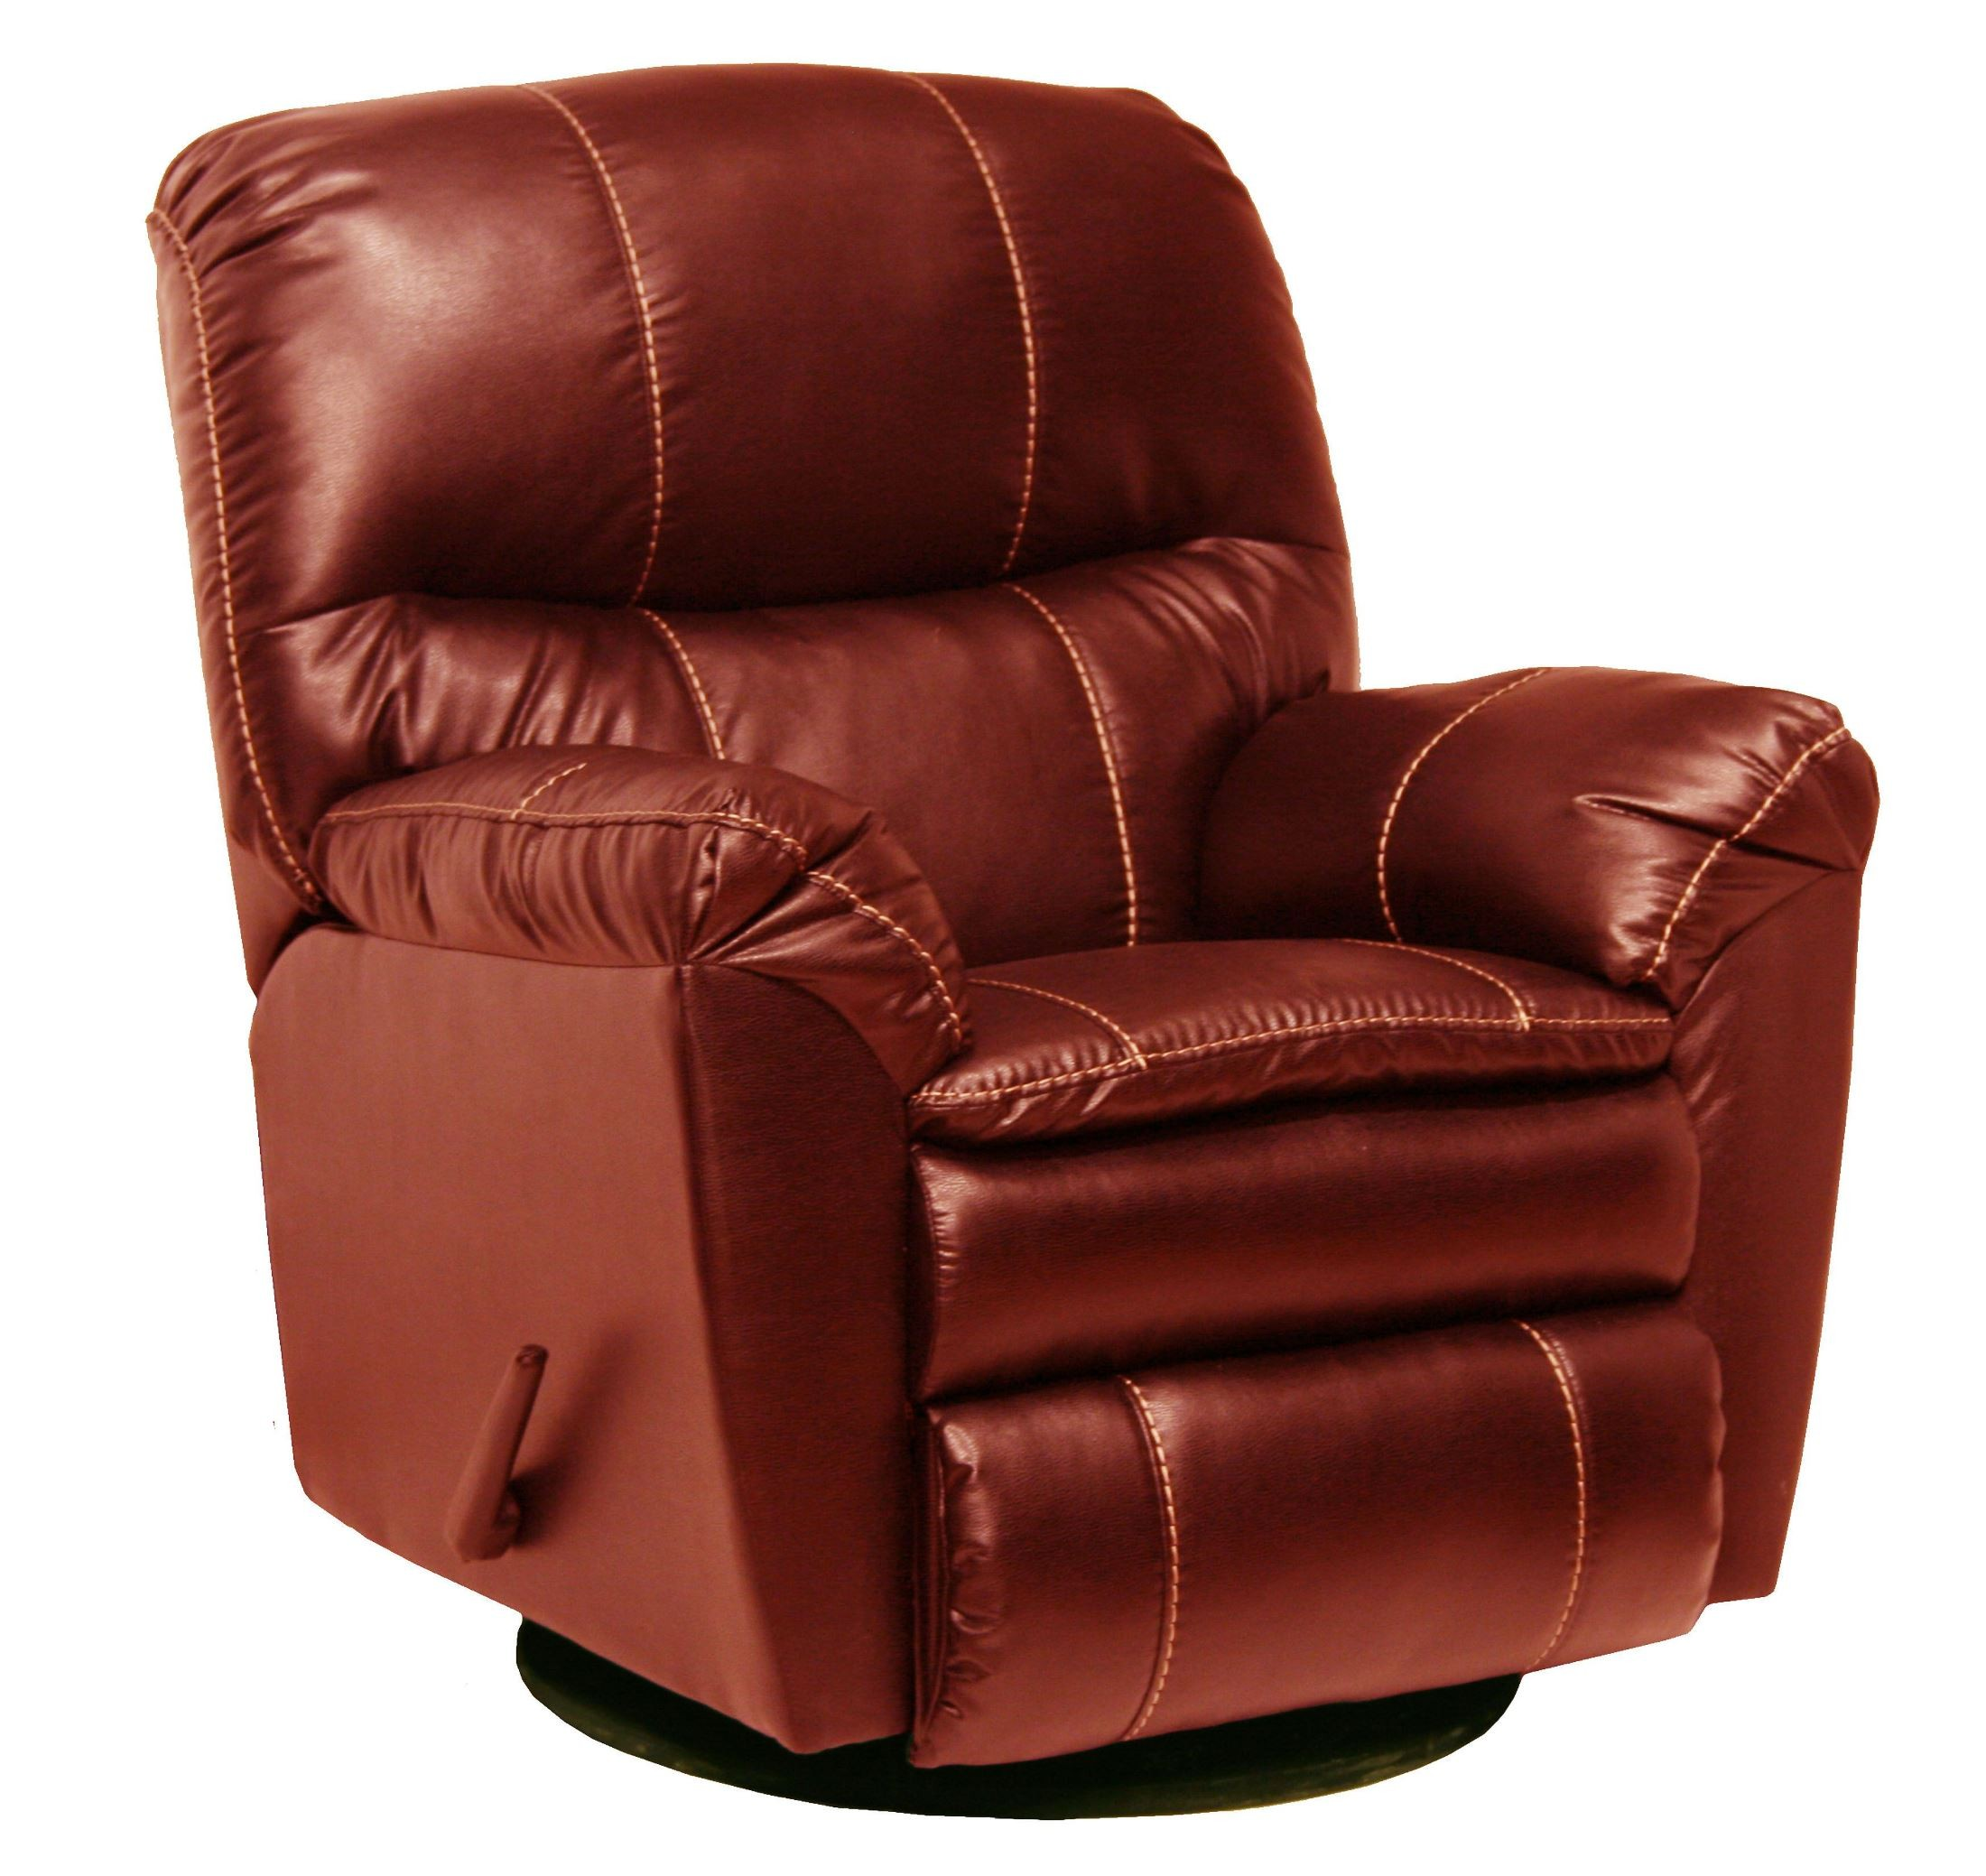 Cosmo Red Leather Swivel Glider Recliner From Catnapper